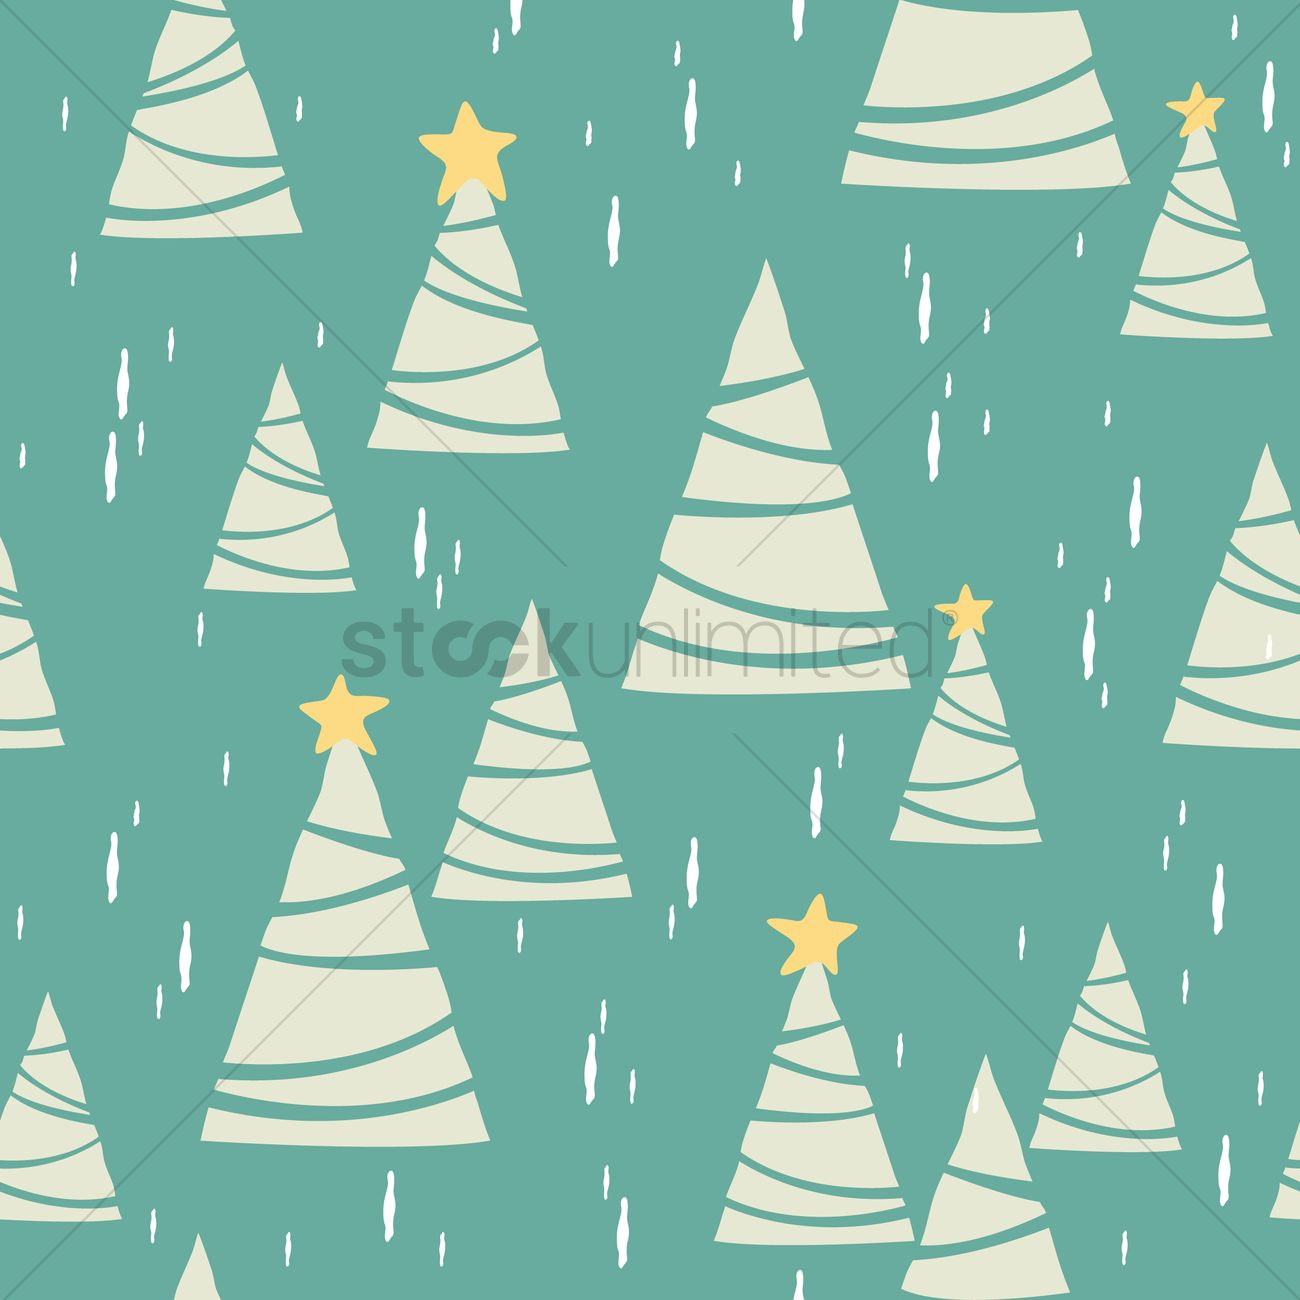 Christmas Graphics Background.Seamless Christmas Trees Background Vector Image 1821414